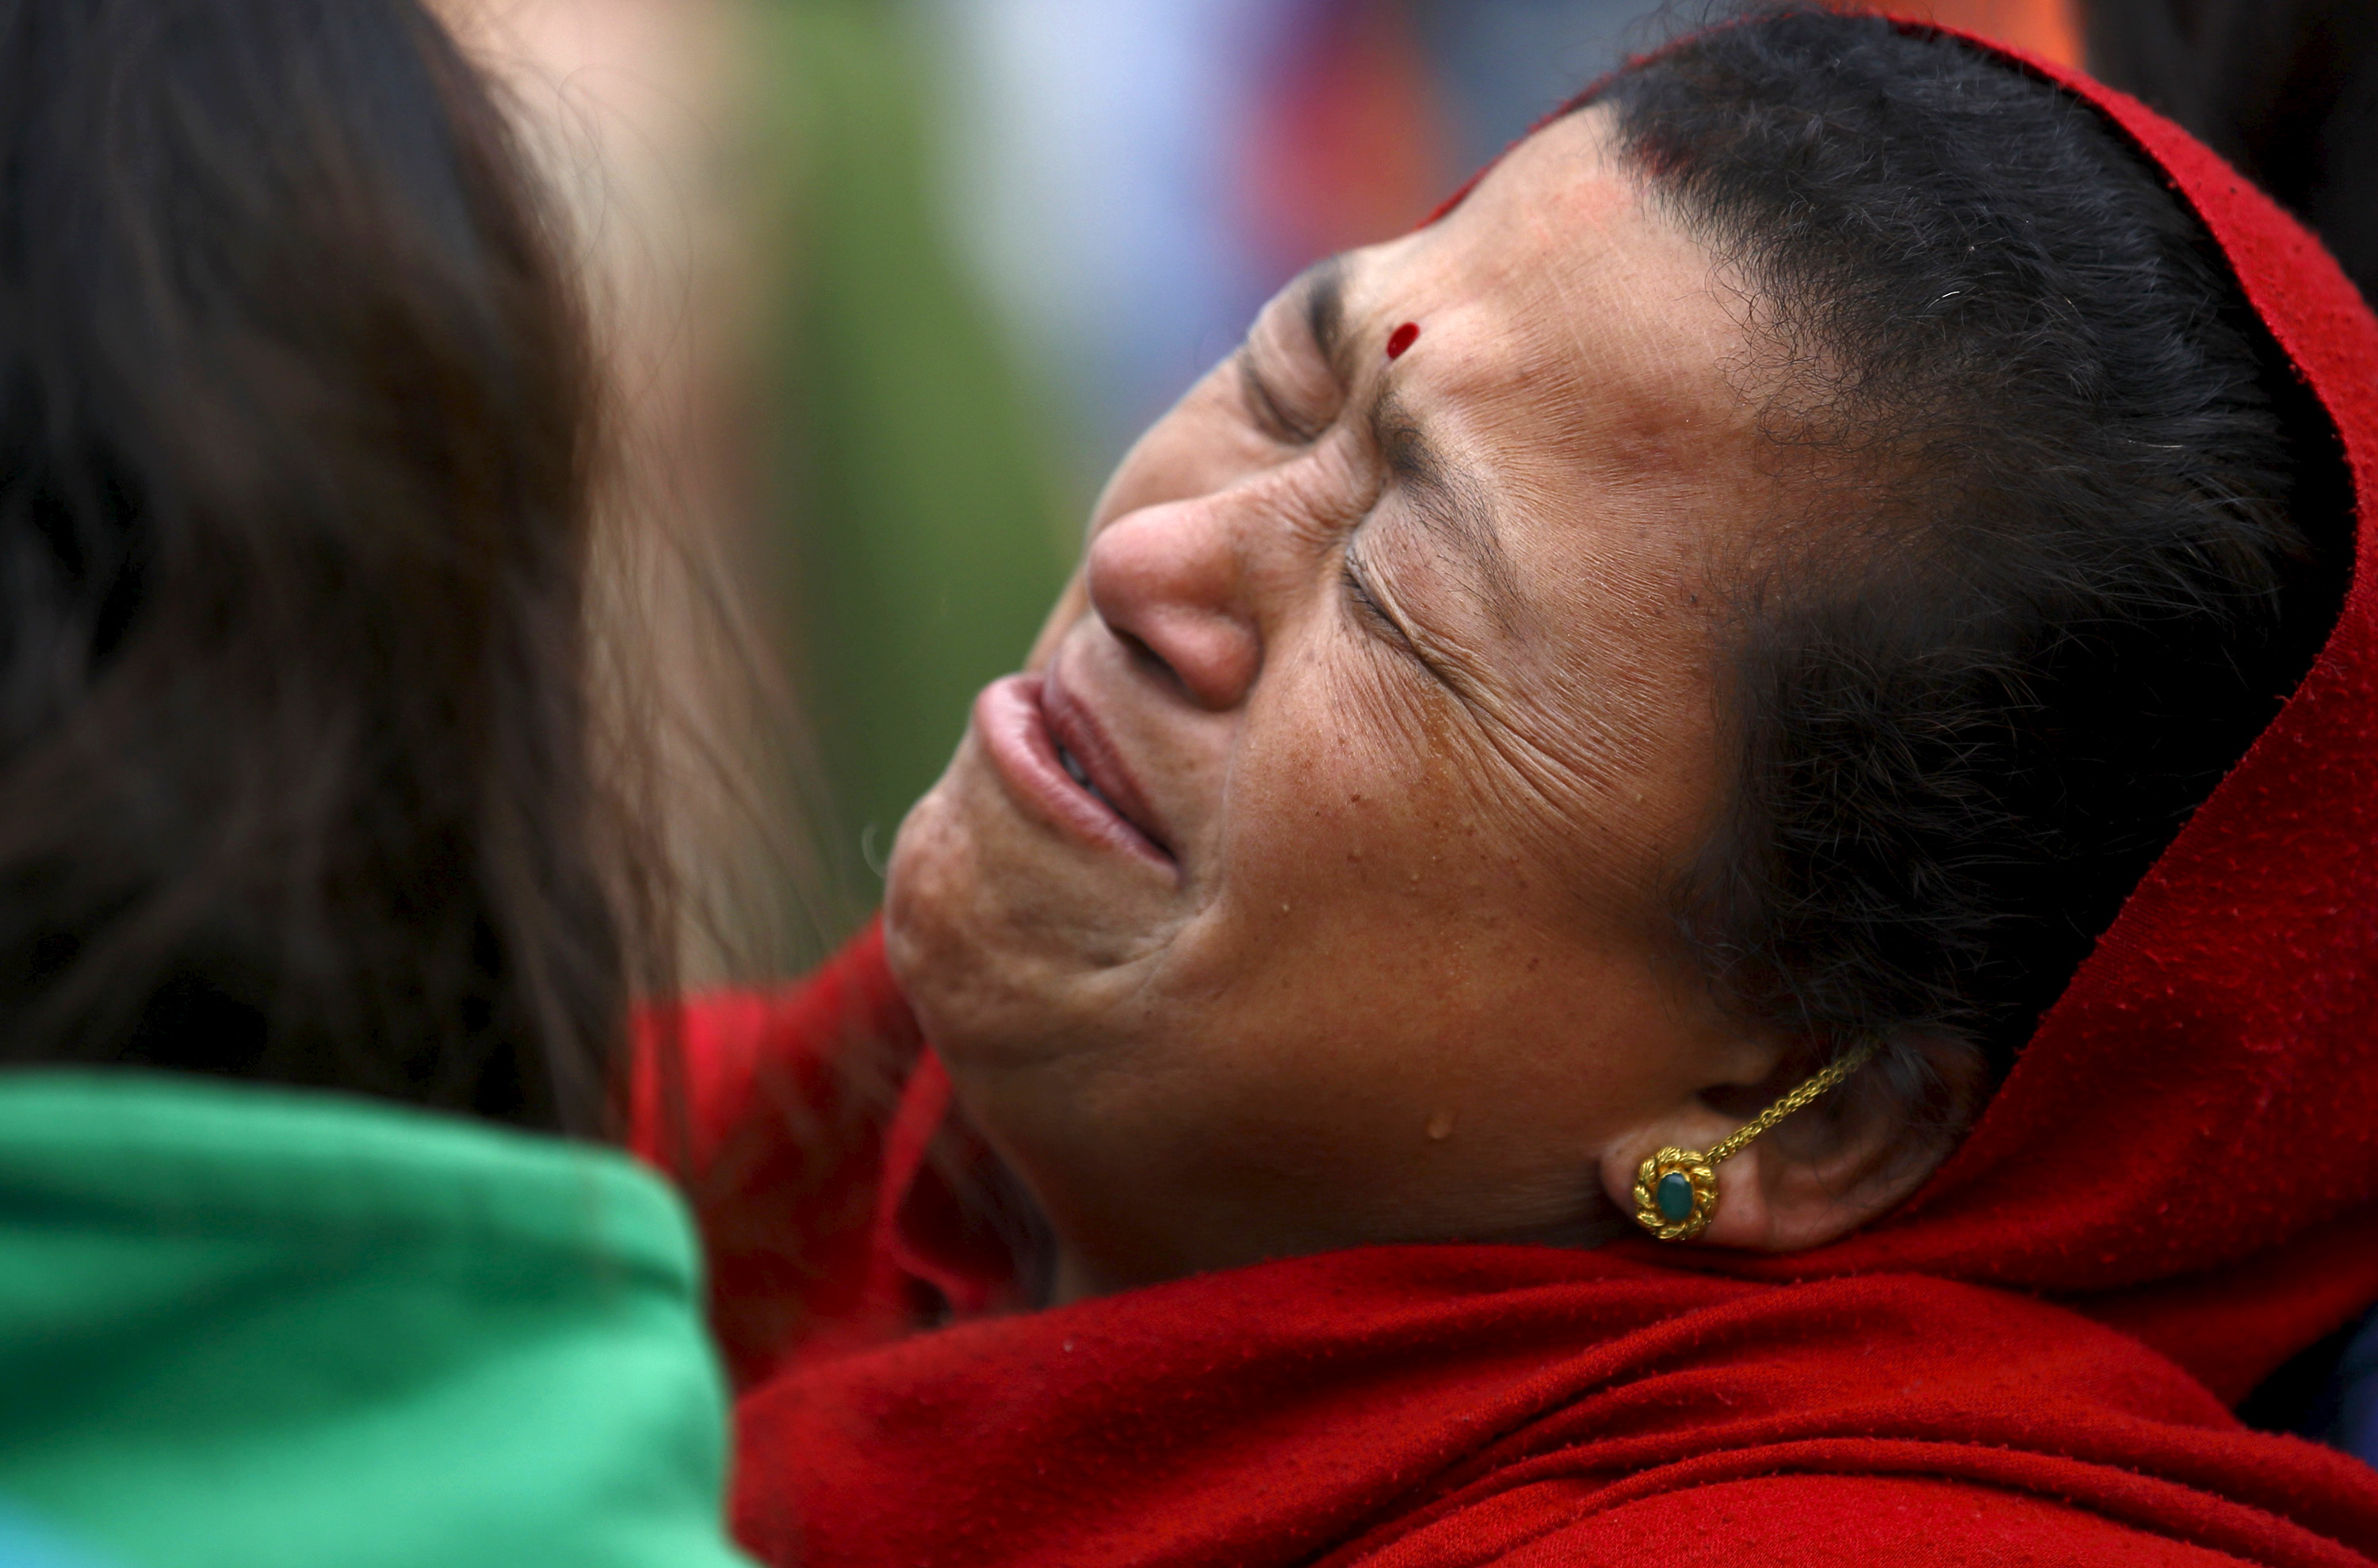 A woman mourns the death of a family member a day after an earthquake in Bhaktapur, Nepal April 26, 2015. Photo by Navesh Chitrakar/REUTERS.